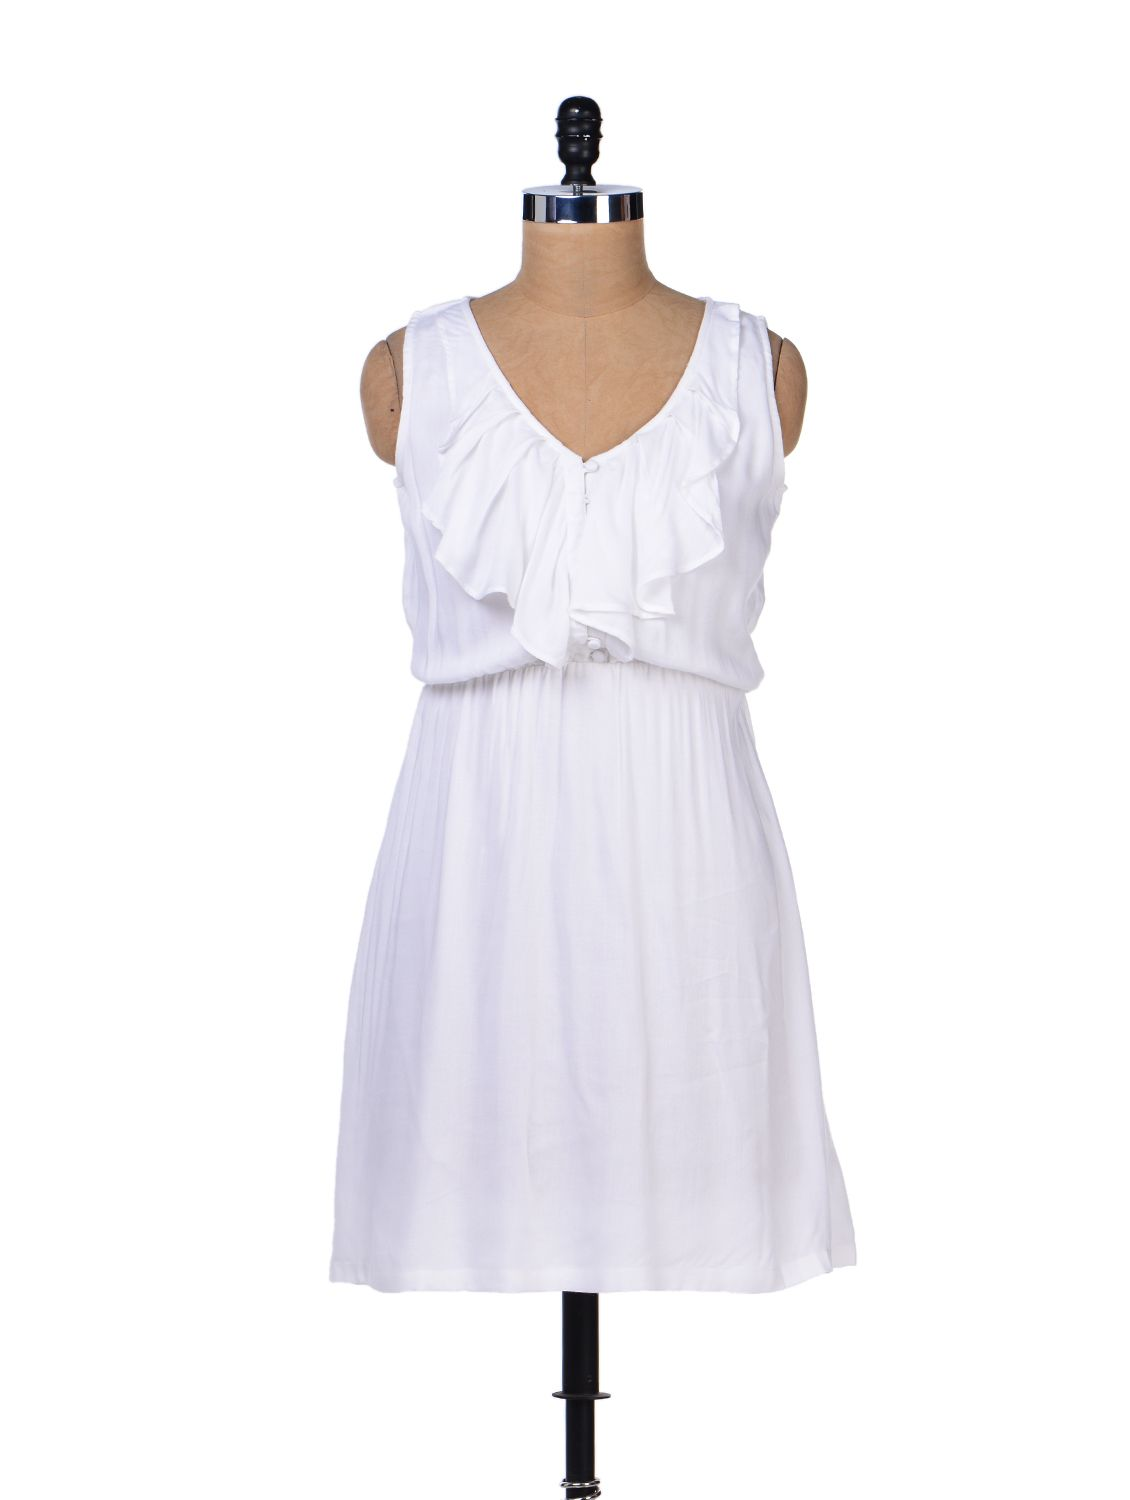 How to create scrapbook on limeroad - Lovely White Ruffle Dress From Femella Limeroad Shopping Dresses Dress